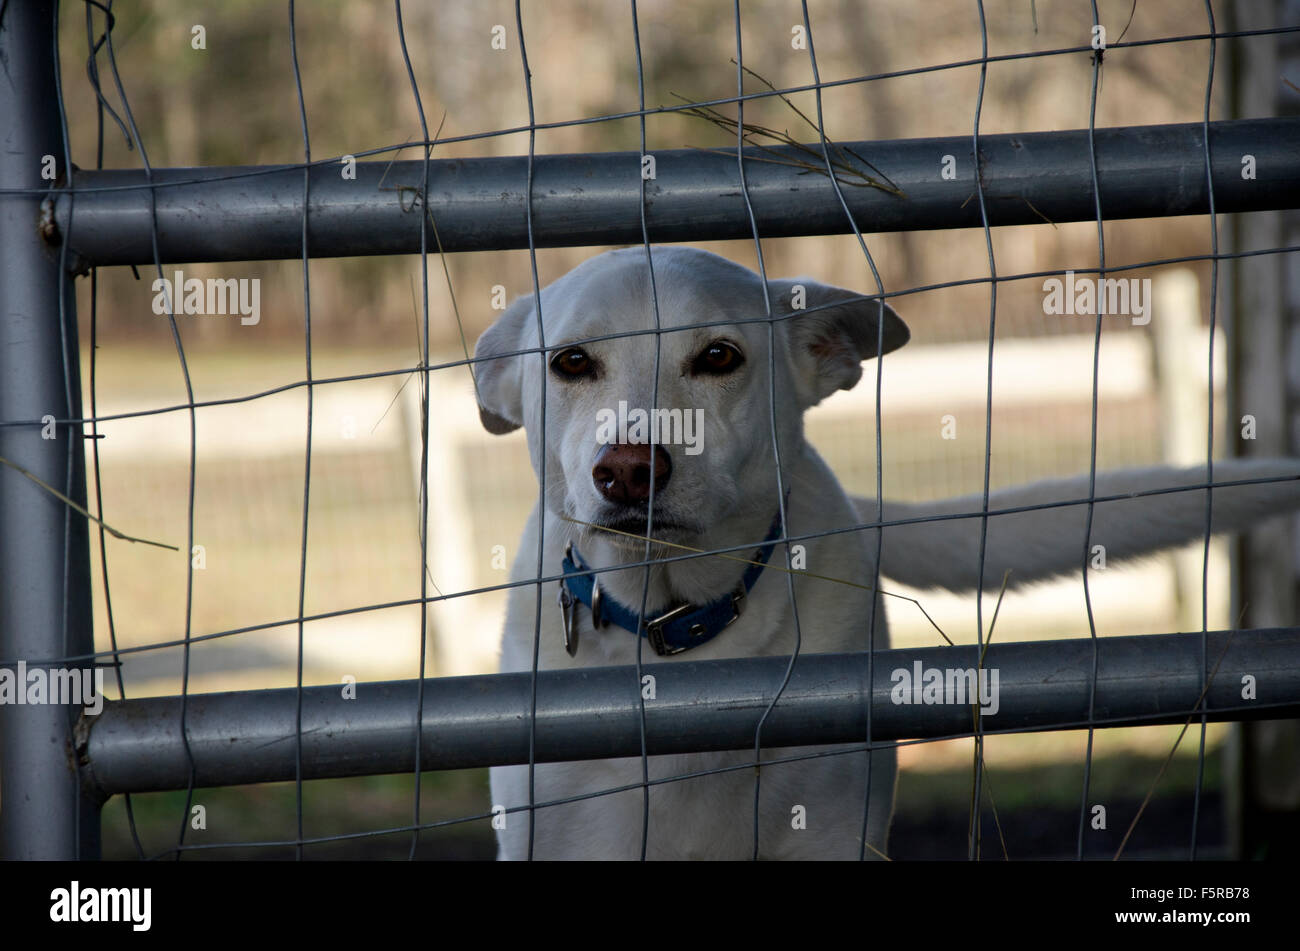 'Let me out'. White dog looking through wire fence, USA - Stock Image